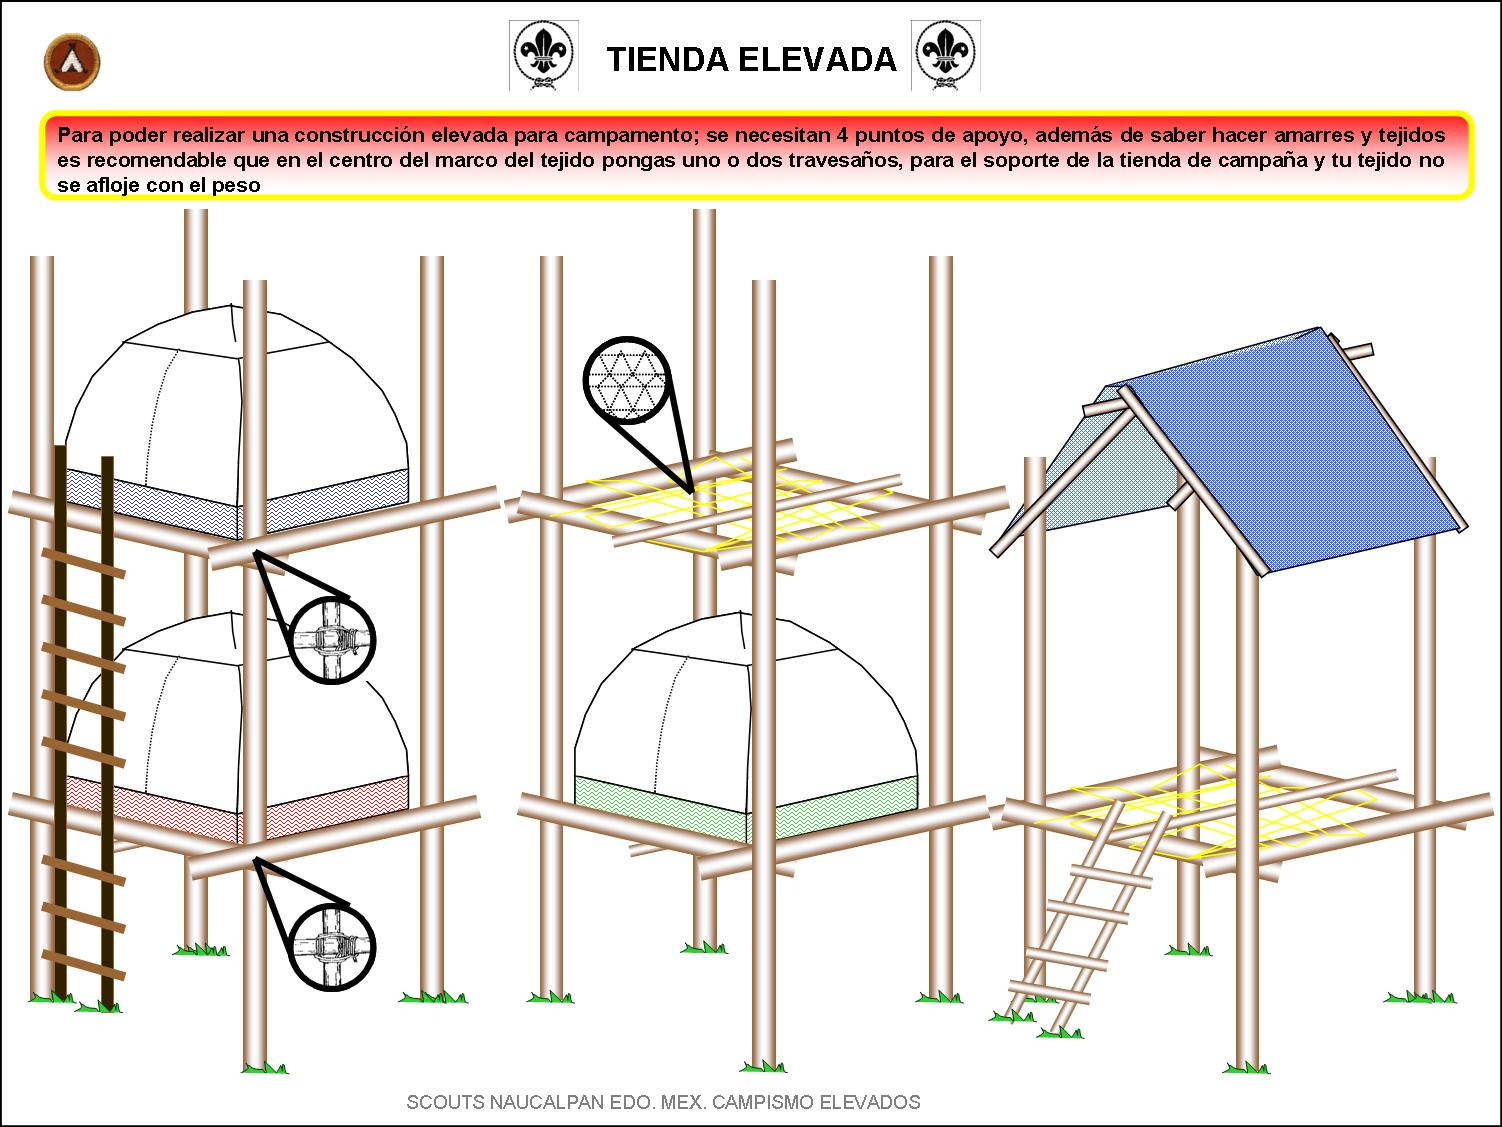 Fases Scout: Elevados